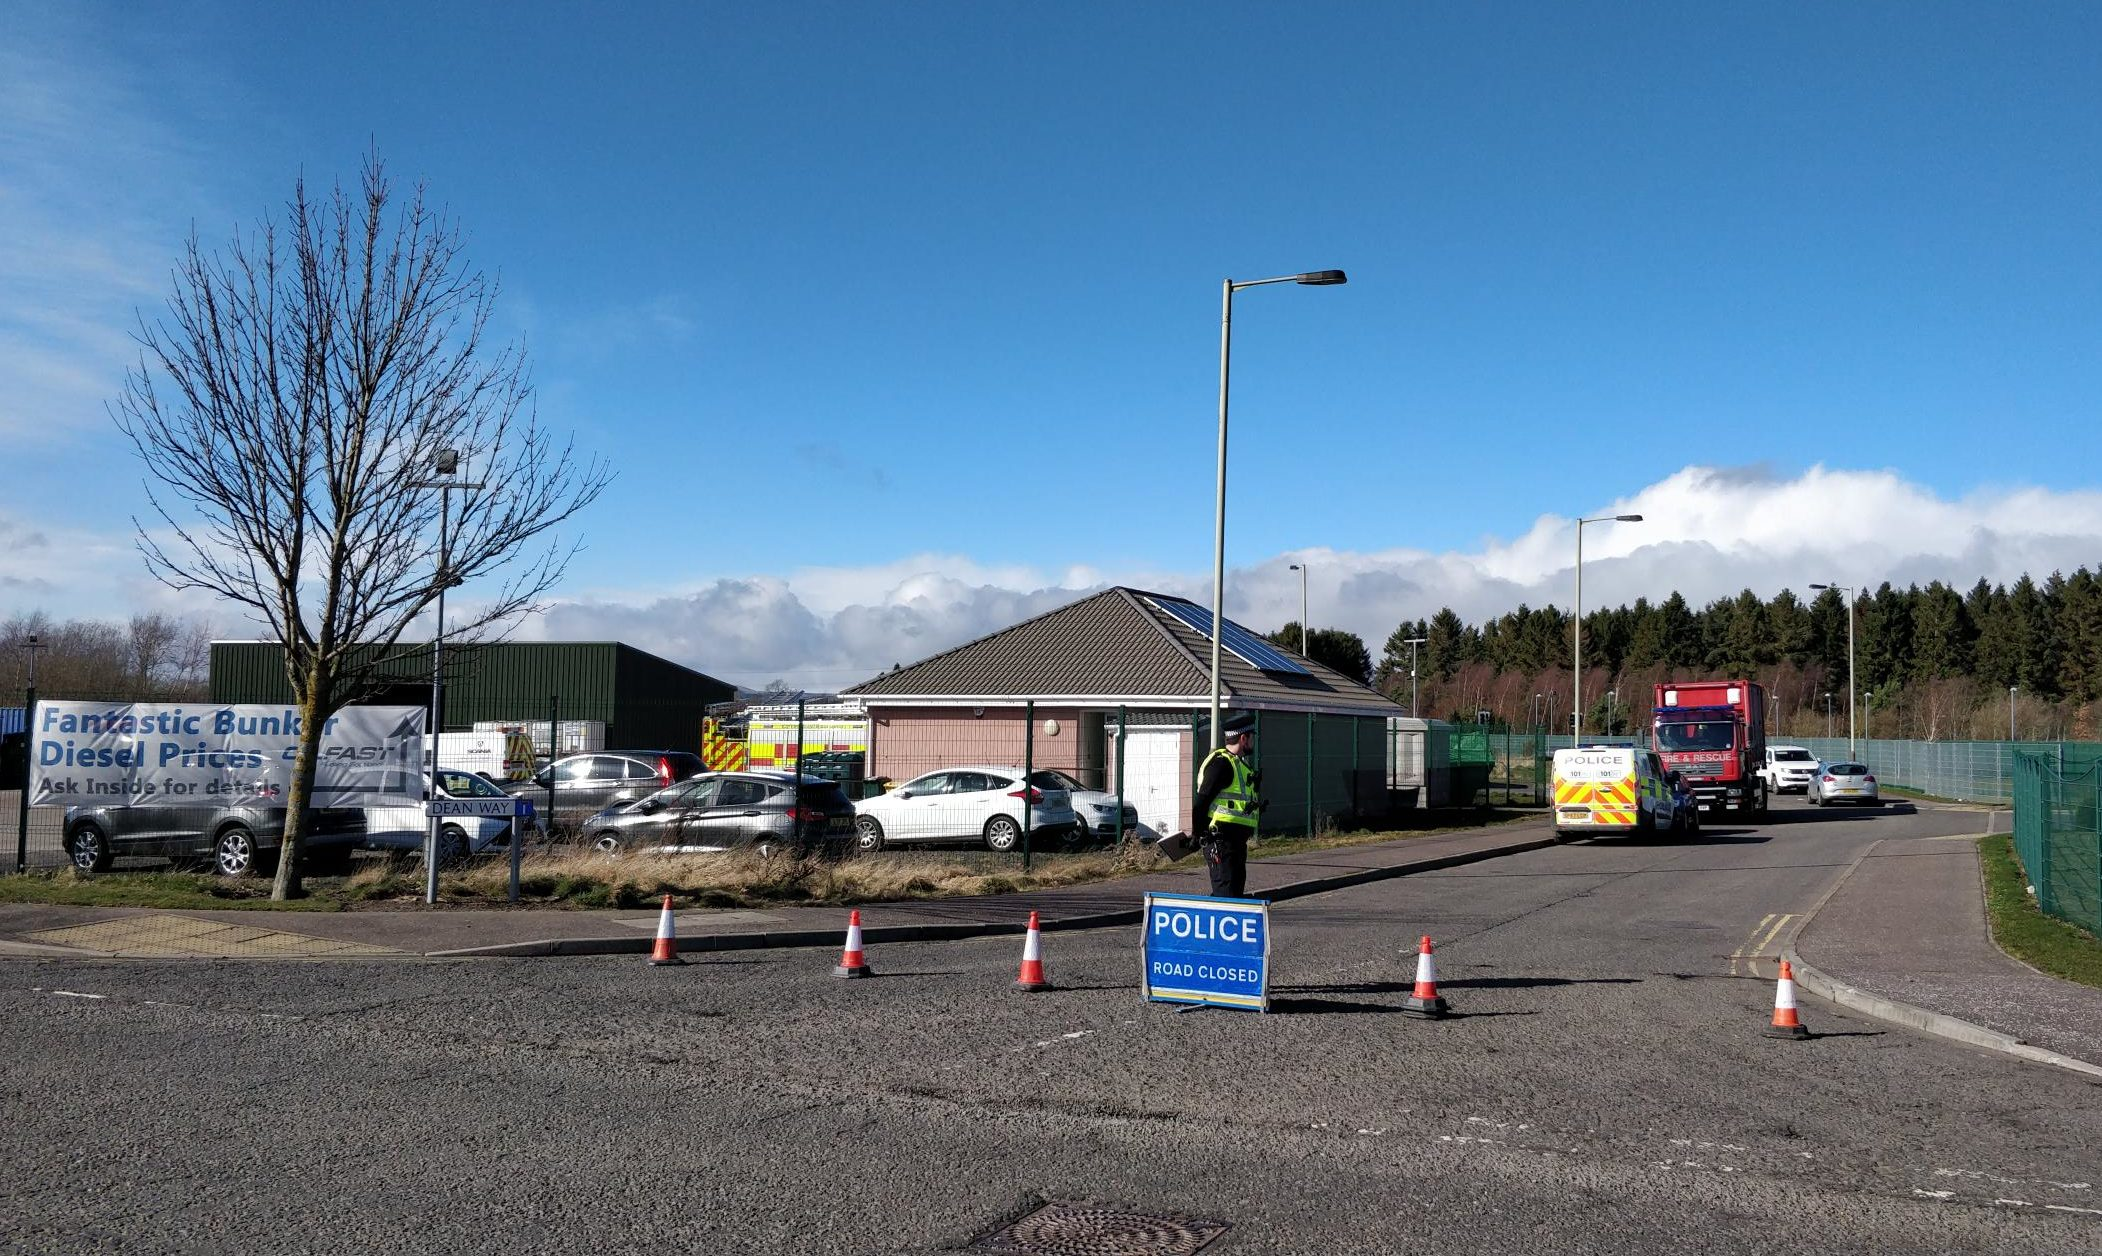 The scene of the incident in Forfar.